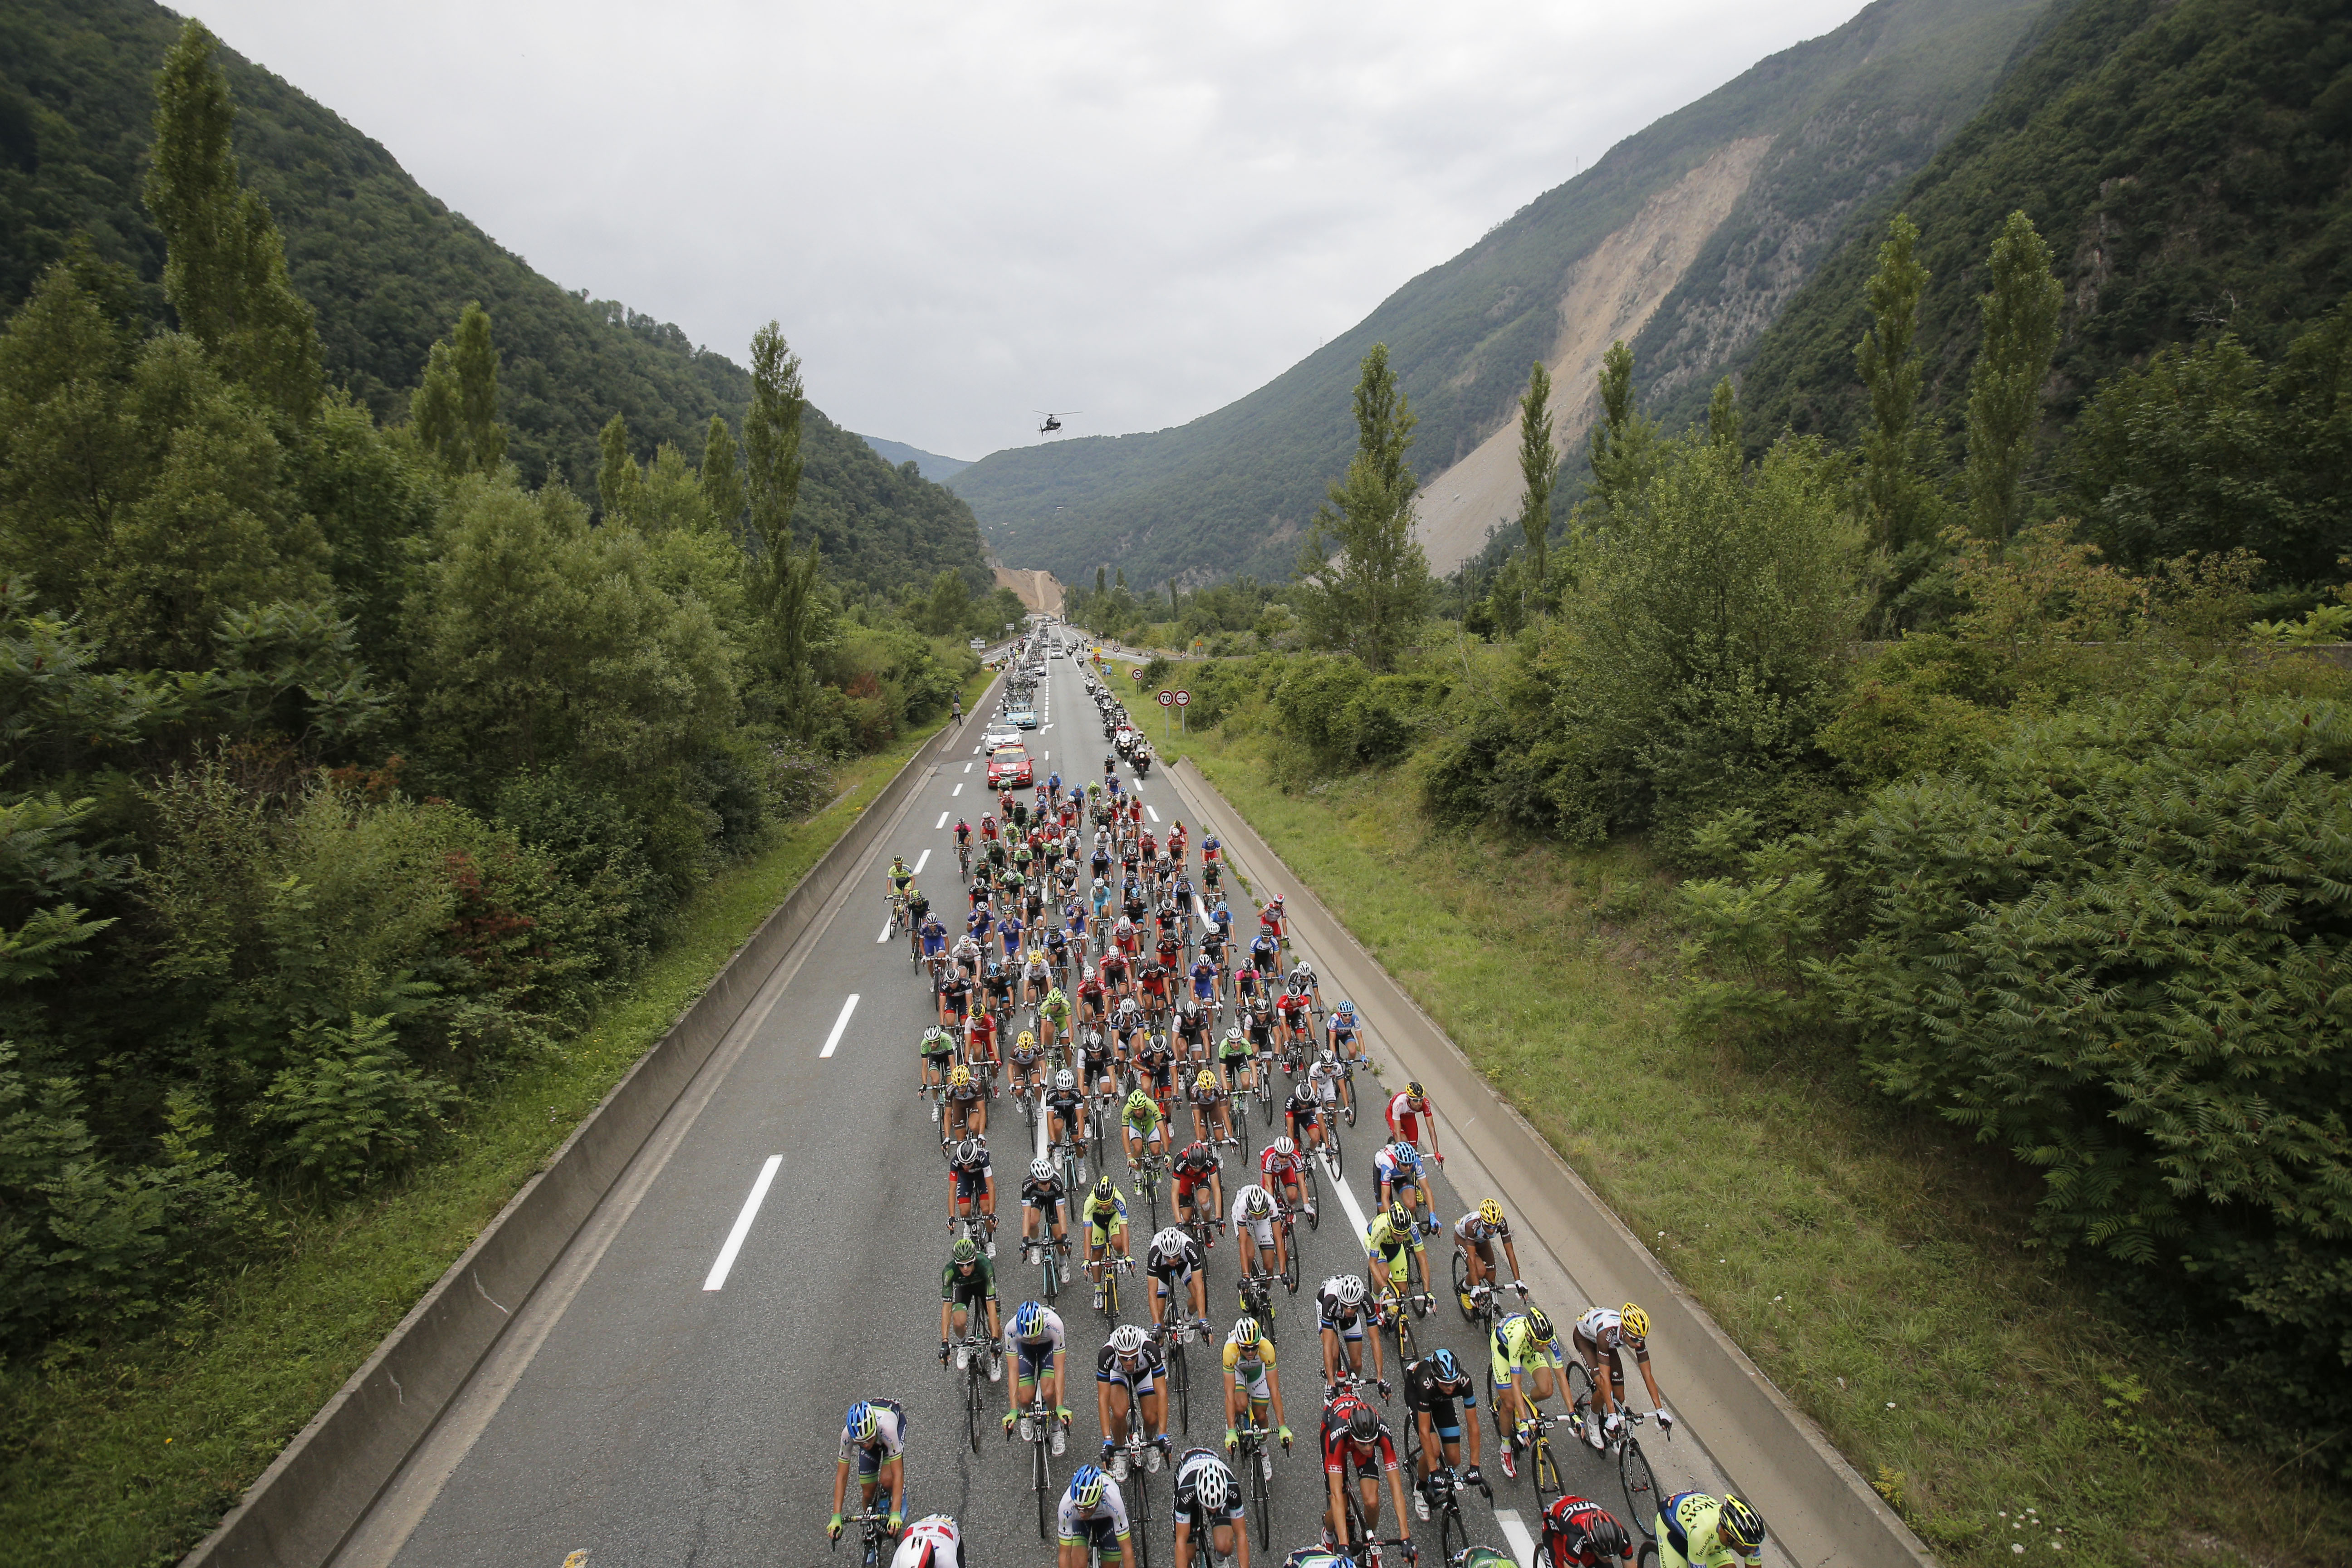 The pack passes under a bridge during the fourteenth stage of the Tour de France.